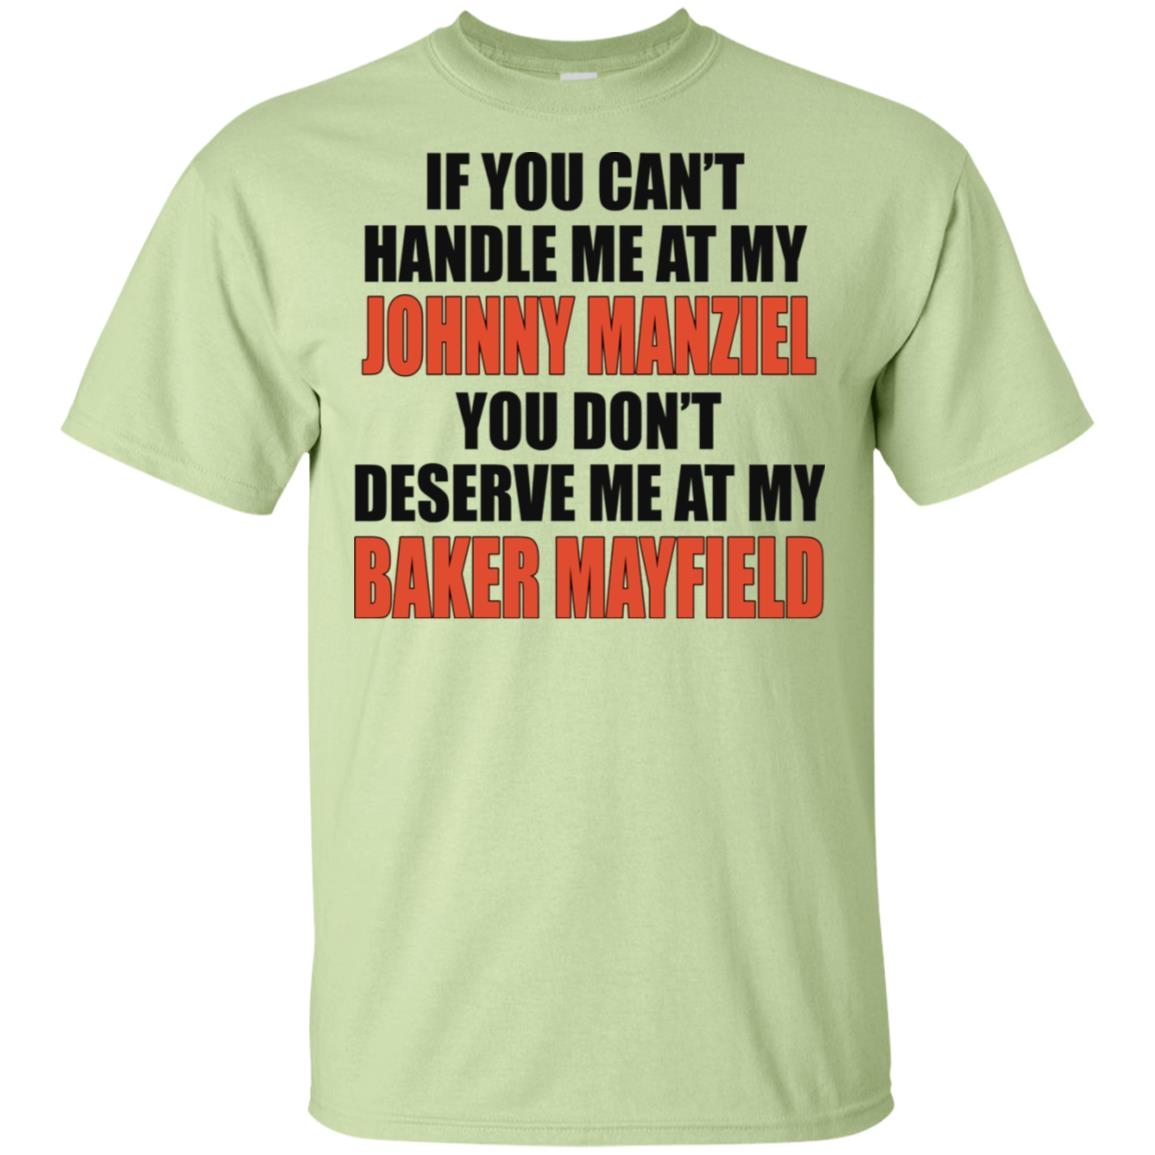 separation shoes d45d9 4fe94 If you can't handle me at my Johnny Manziel You Don't Deserve Me at My  Baker Mayfield Shirt